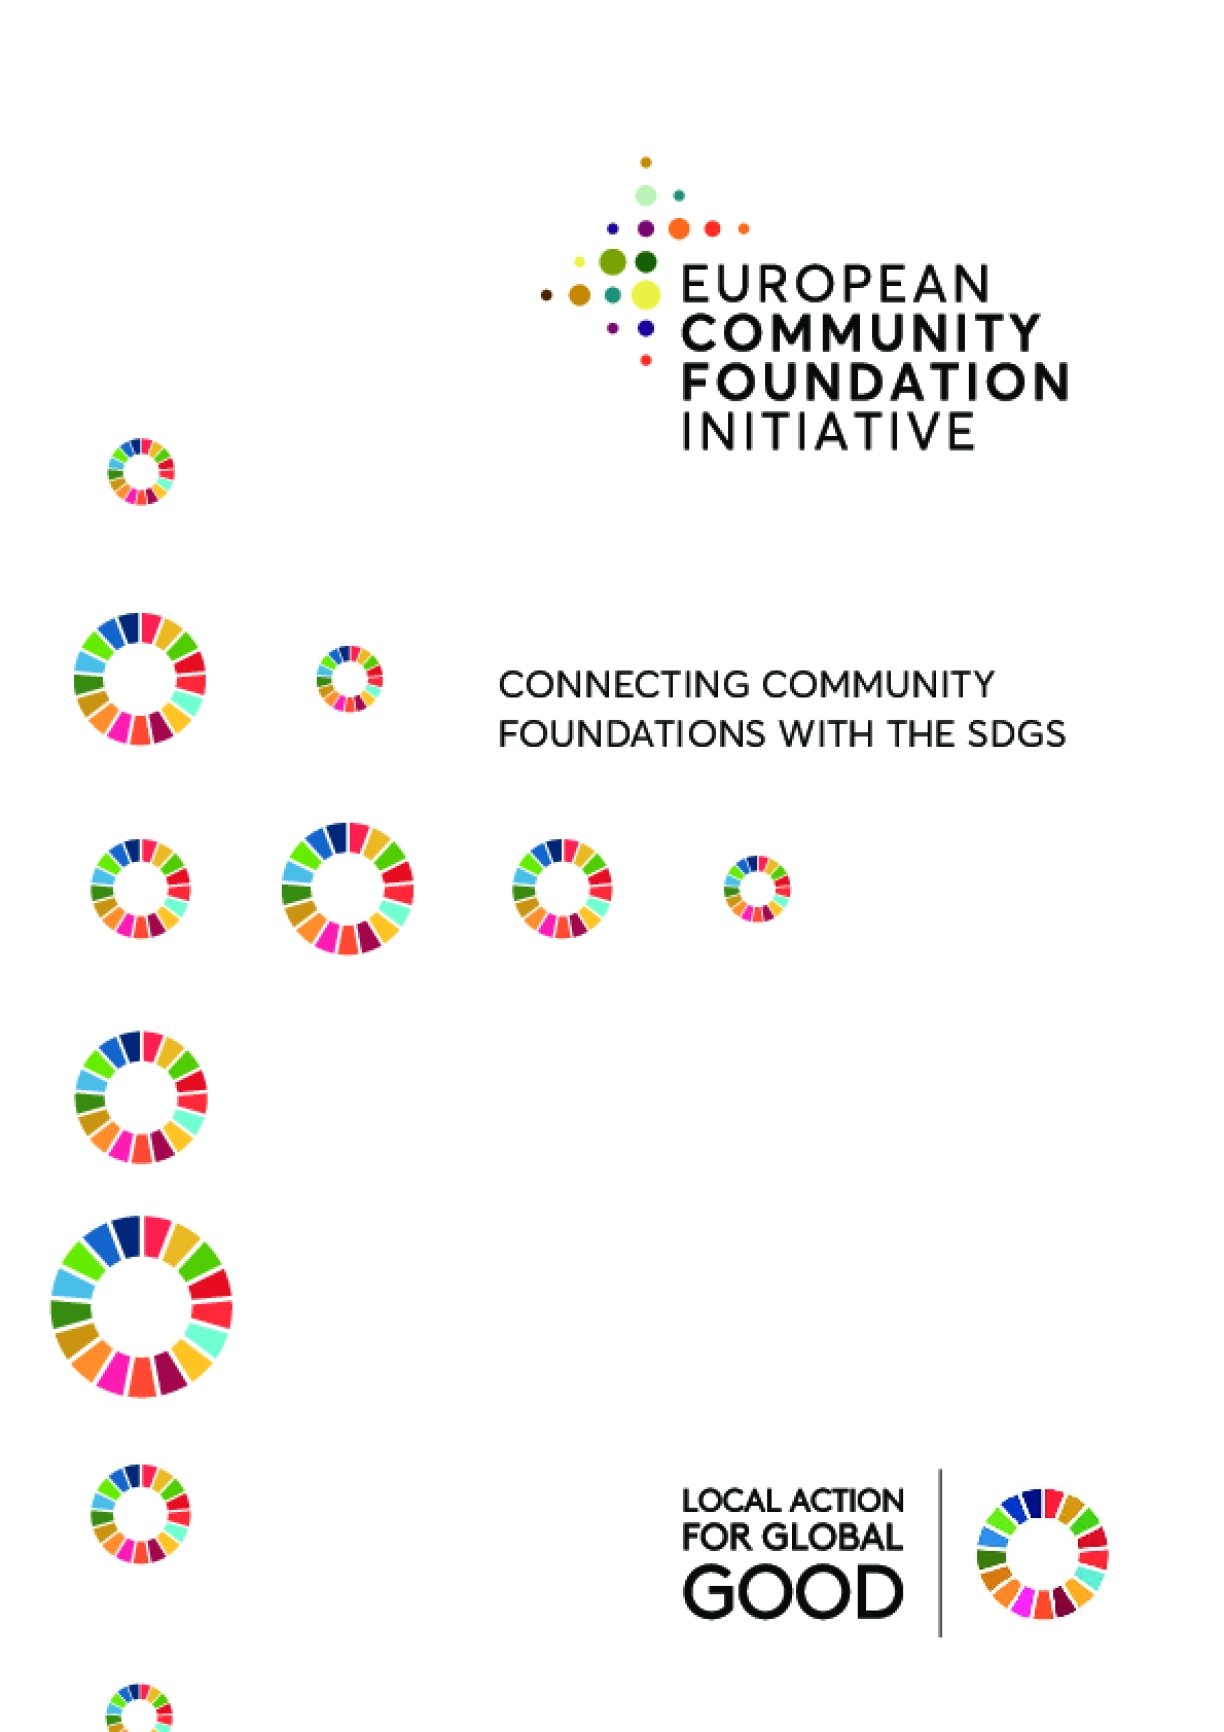 Connecting Community Foundations with the SDGs